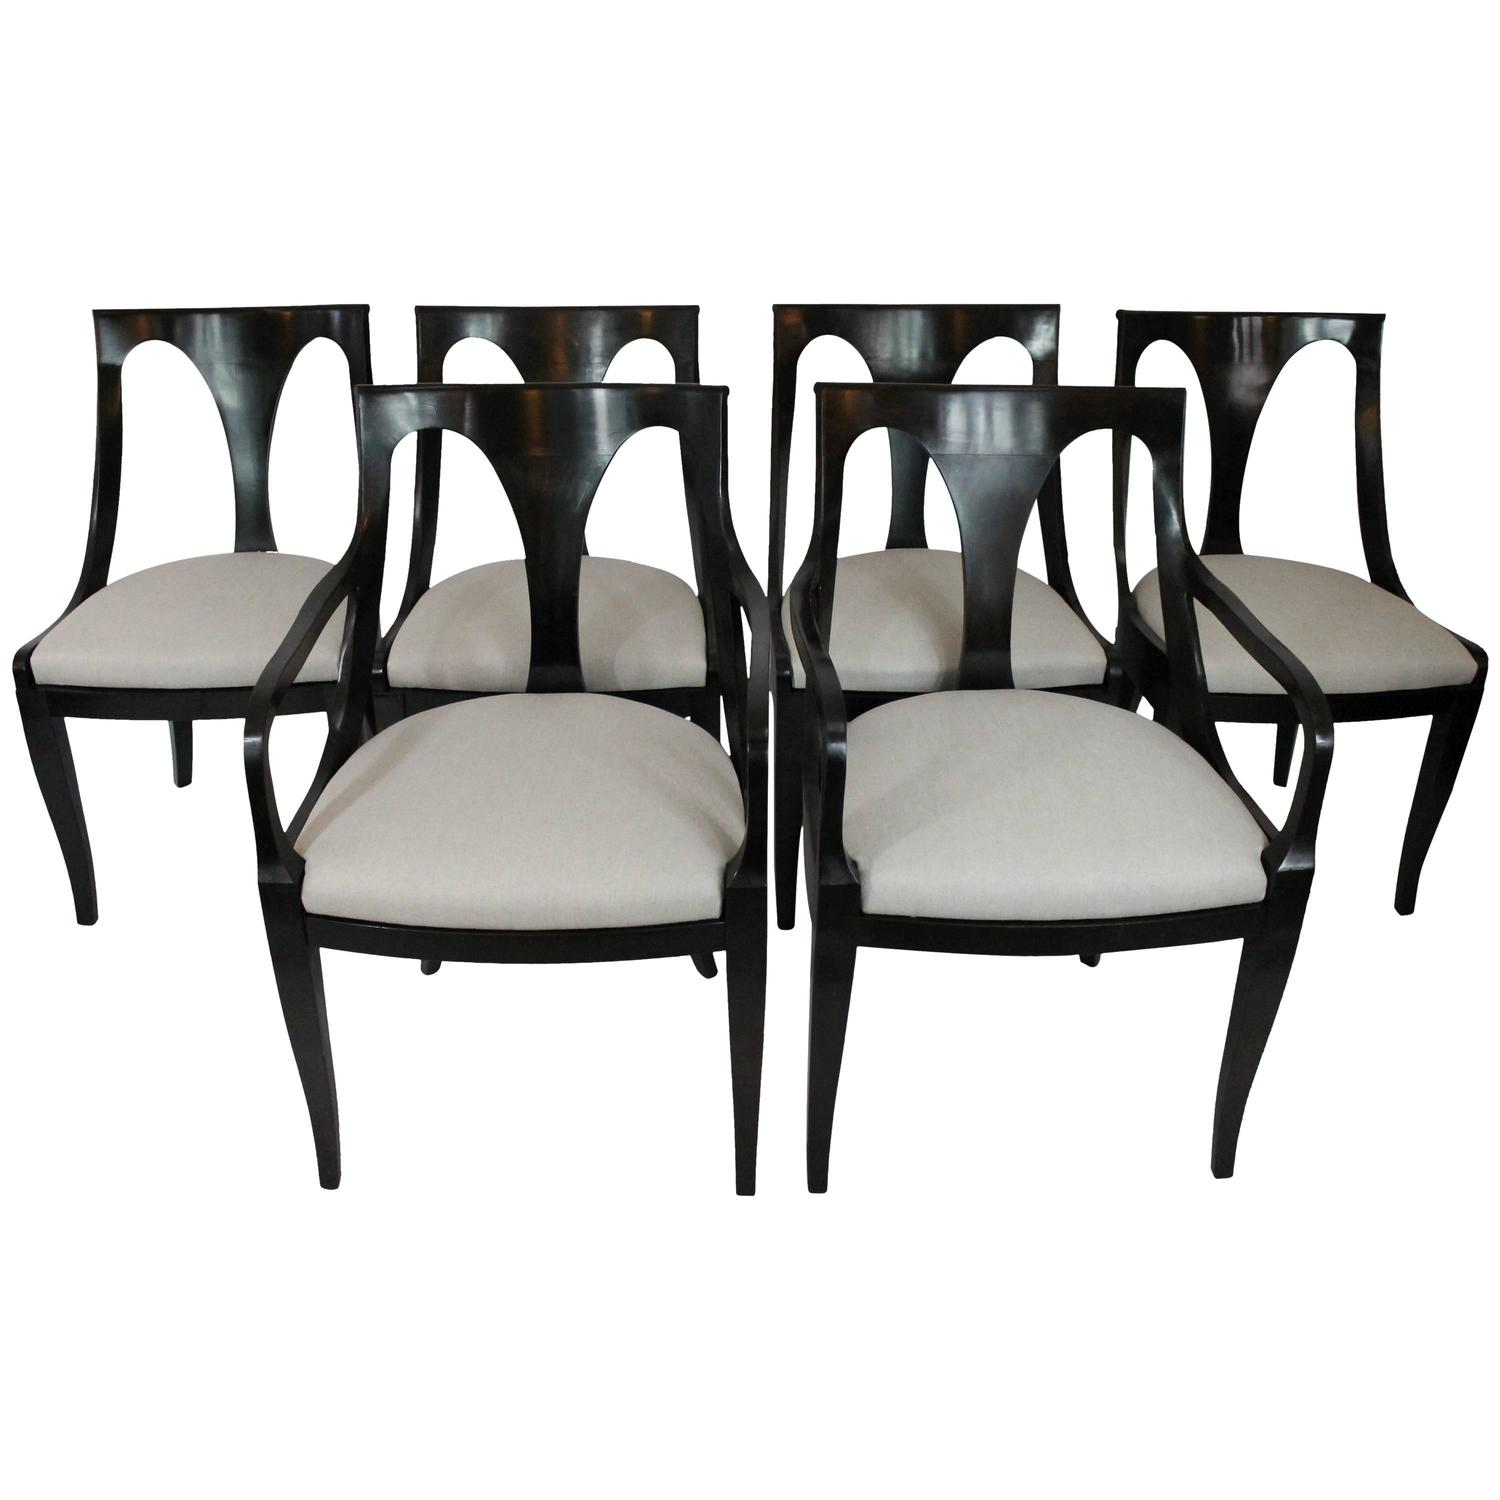 Fascinating dining room furniture houston tx inspired pics for Z furniture houston